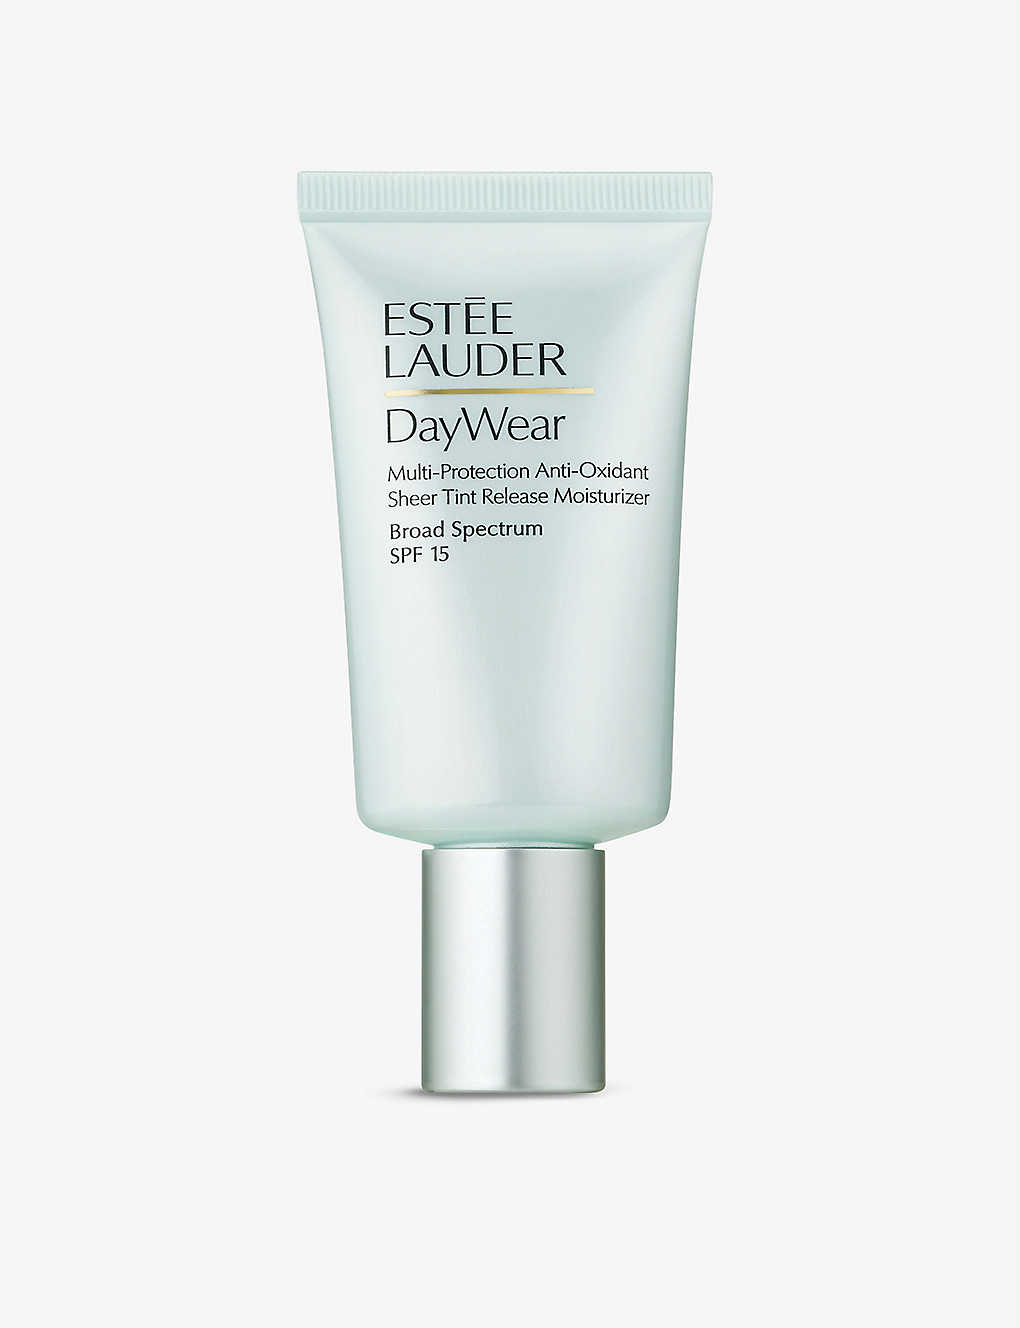 ESTEE LAUDER: DayWear Sheer Tint Release Advanced Multi-Protection Anti–Oxidant Moisturiser SPF 15 50ml